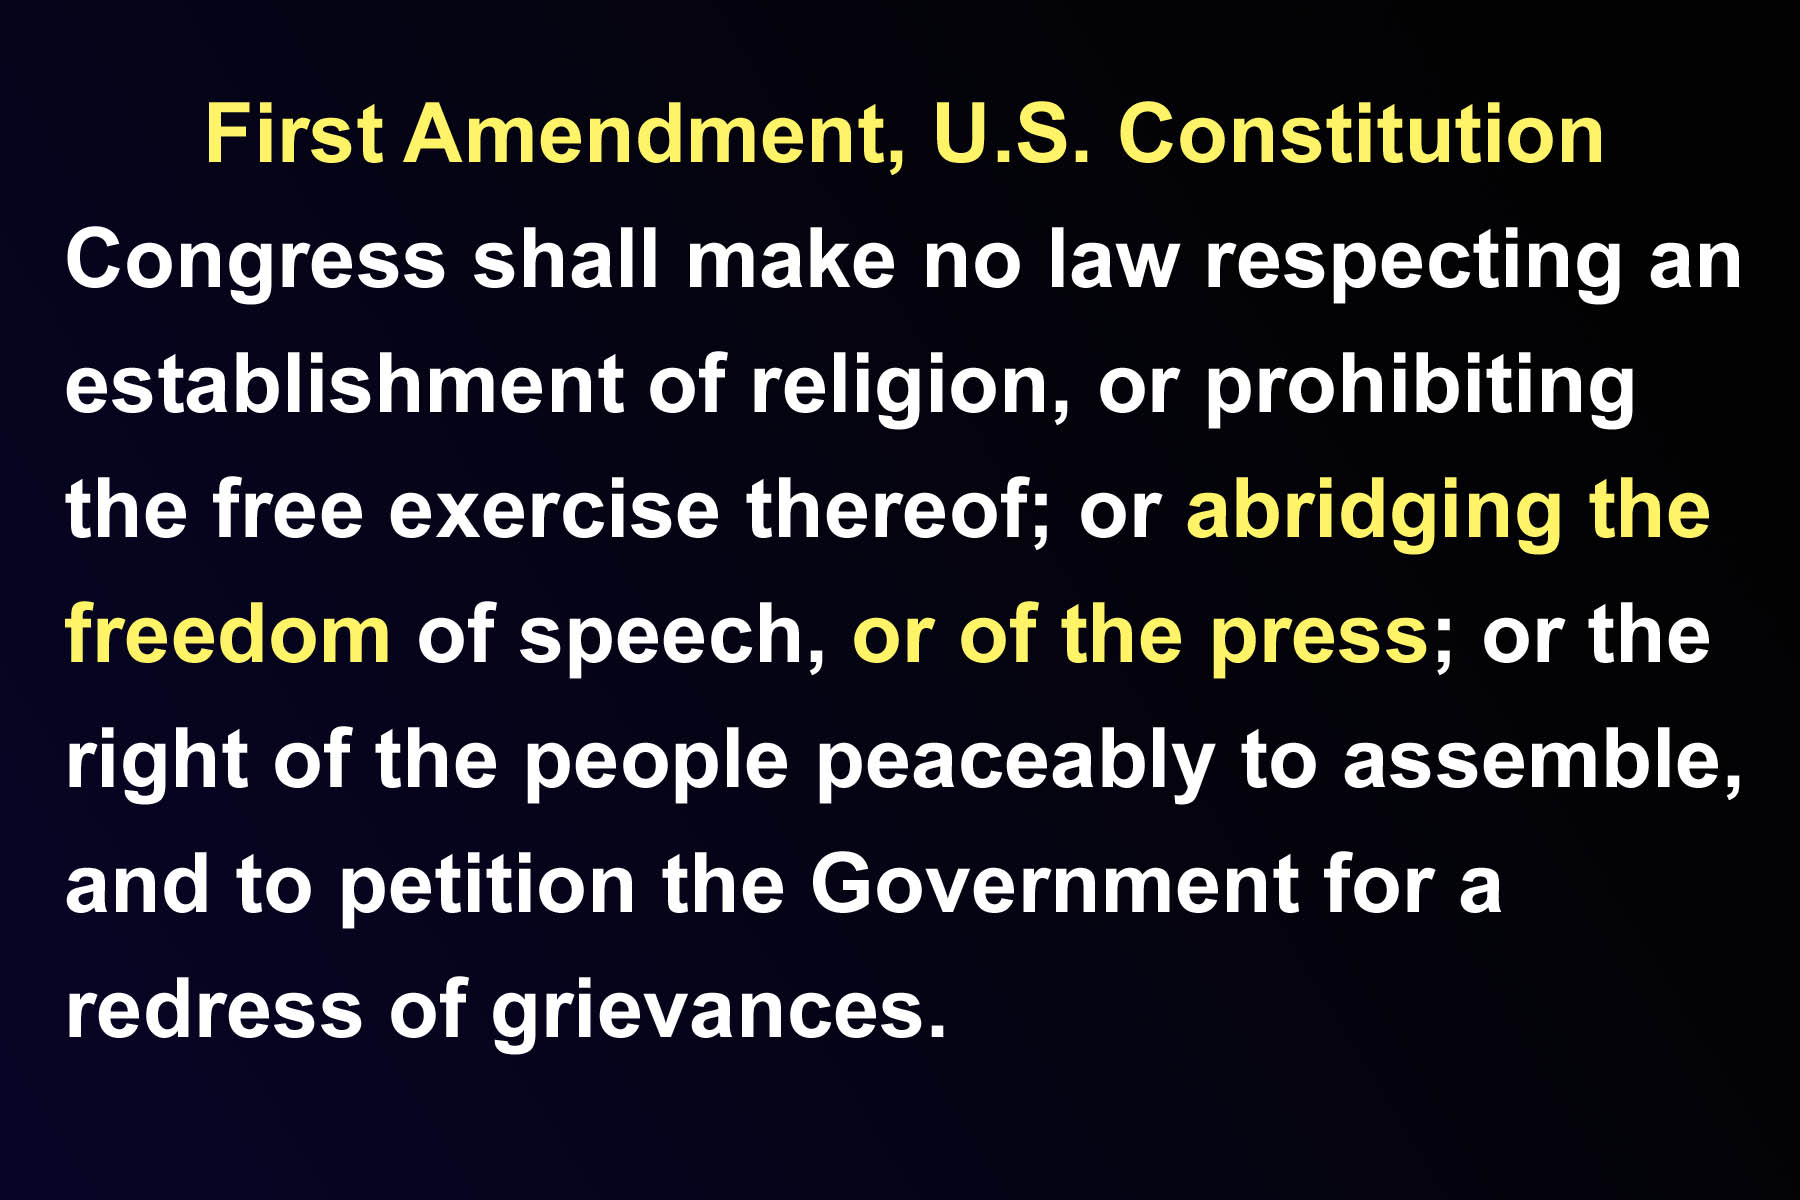 1st amendment Y indicates that state ratified amendment n  indicates that state rejected amendment y (‡) indicates that state ratified amendment after first rejecting it y (×) indicates that state ratified amendment, later rescinded that ratification, but subsequently re-ratified it.